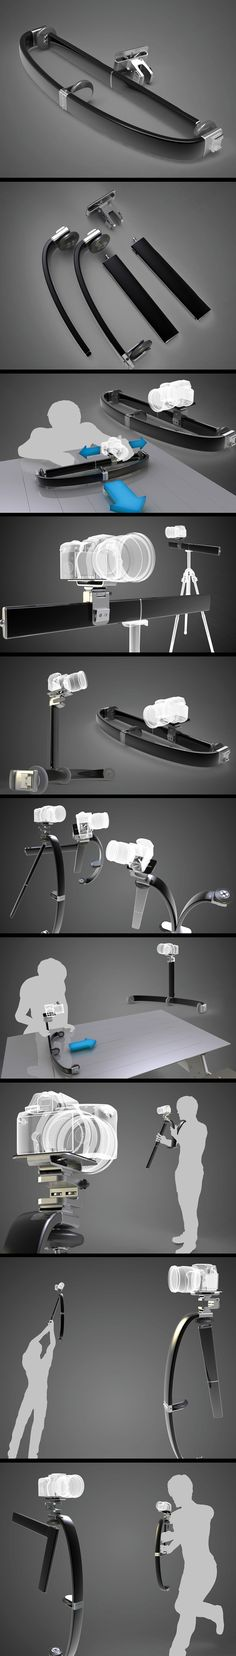 All-In-One Videography Tool for DSLR cameras. / http://www.yankodesign.com